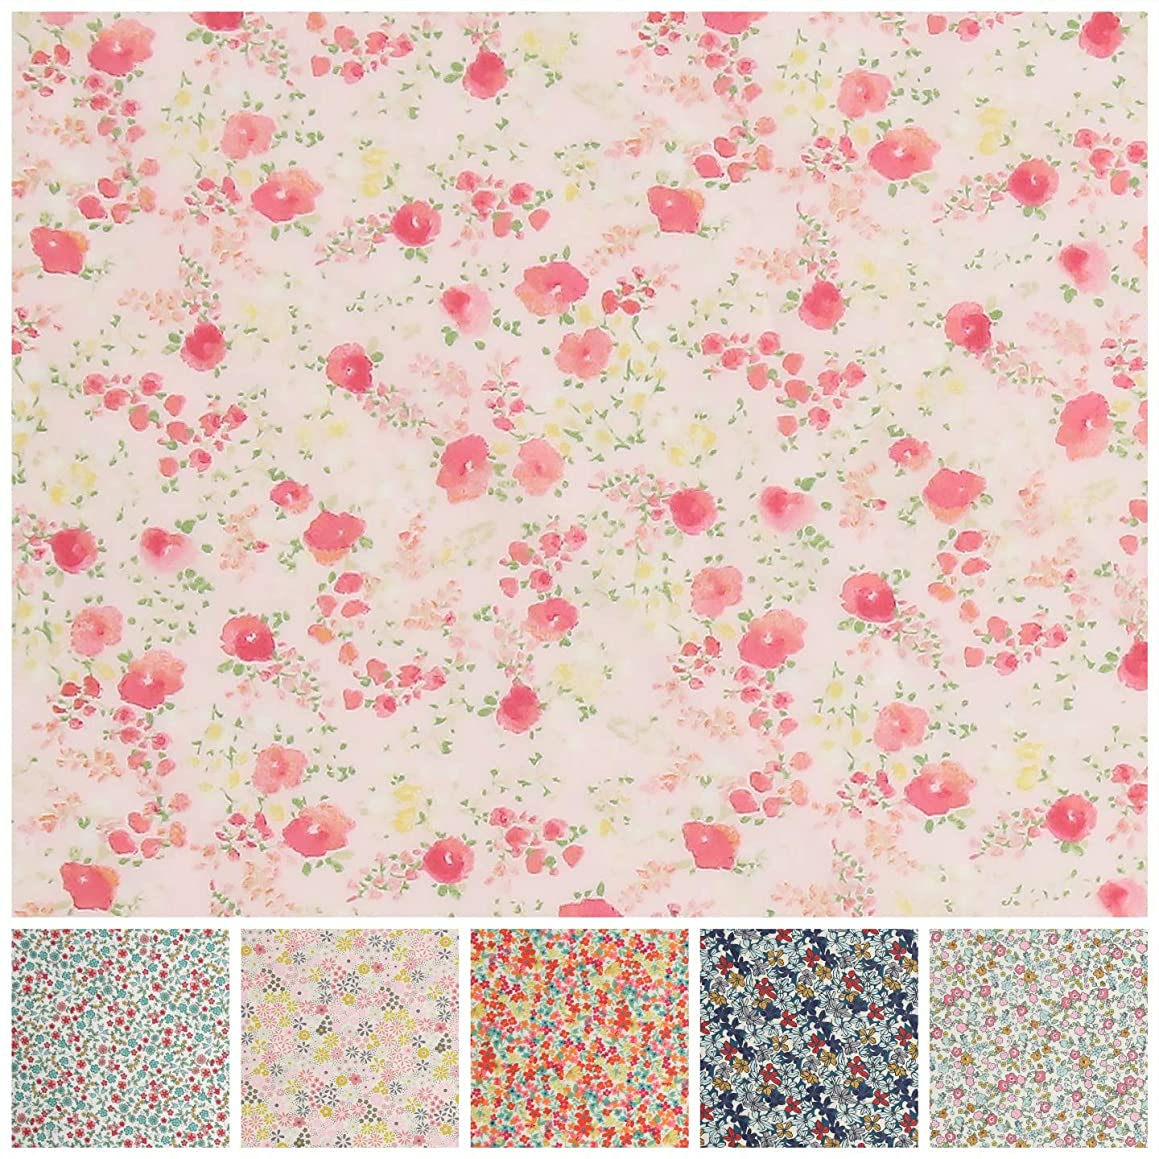 COTTONVILL RevLawn Cotton Lawn Flowers Fabric 2yd, Fiona Pink